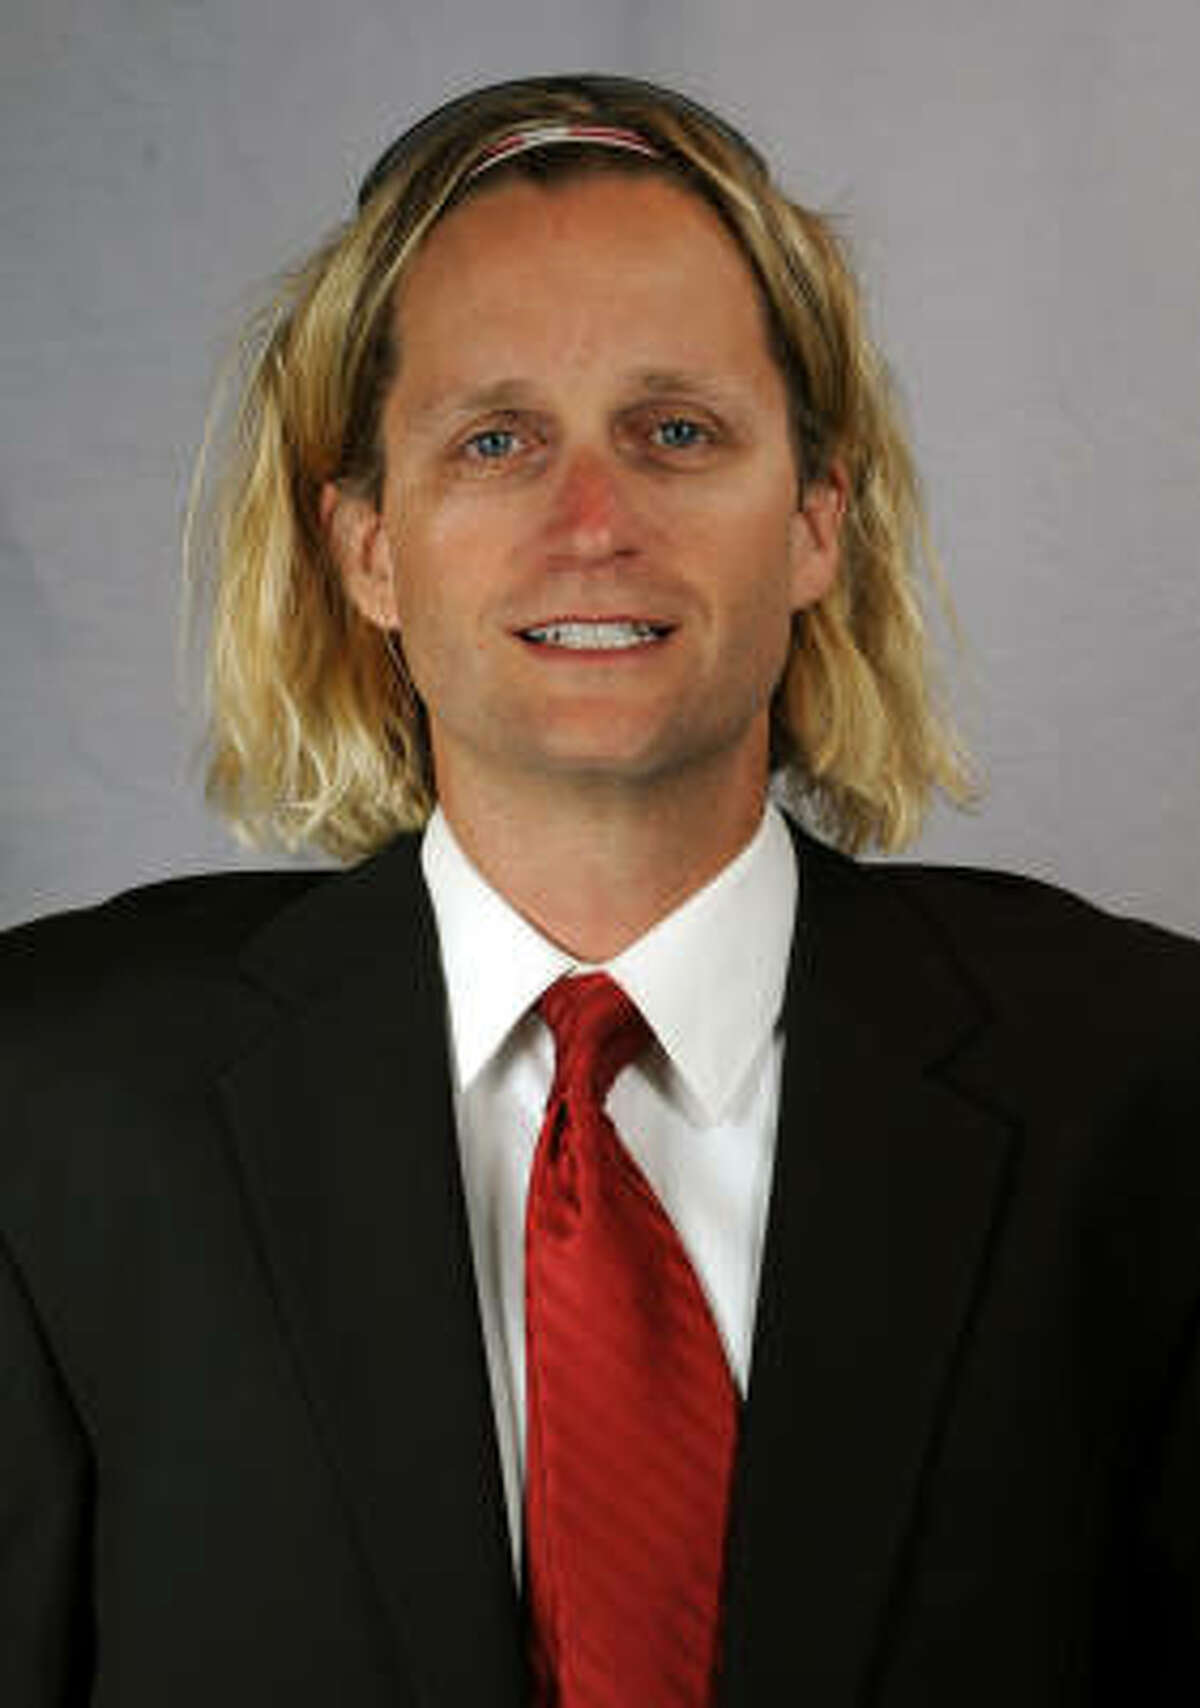 Oregon quarterbacks coach David Yost claims his hairstyle was crafted to set him apart in recruiting. It appears to have achieved his aim. (Oregon sports information department)